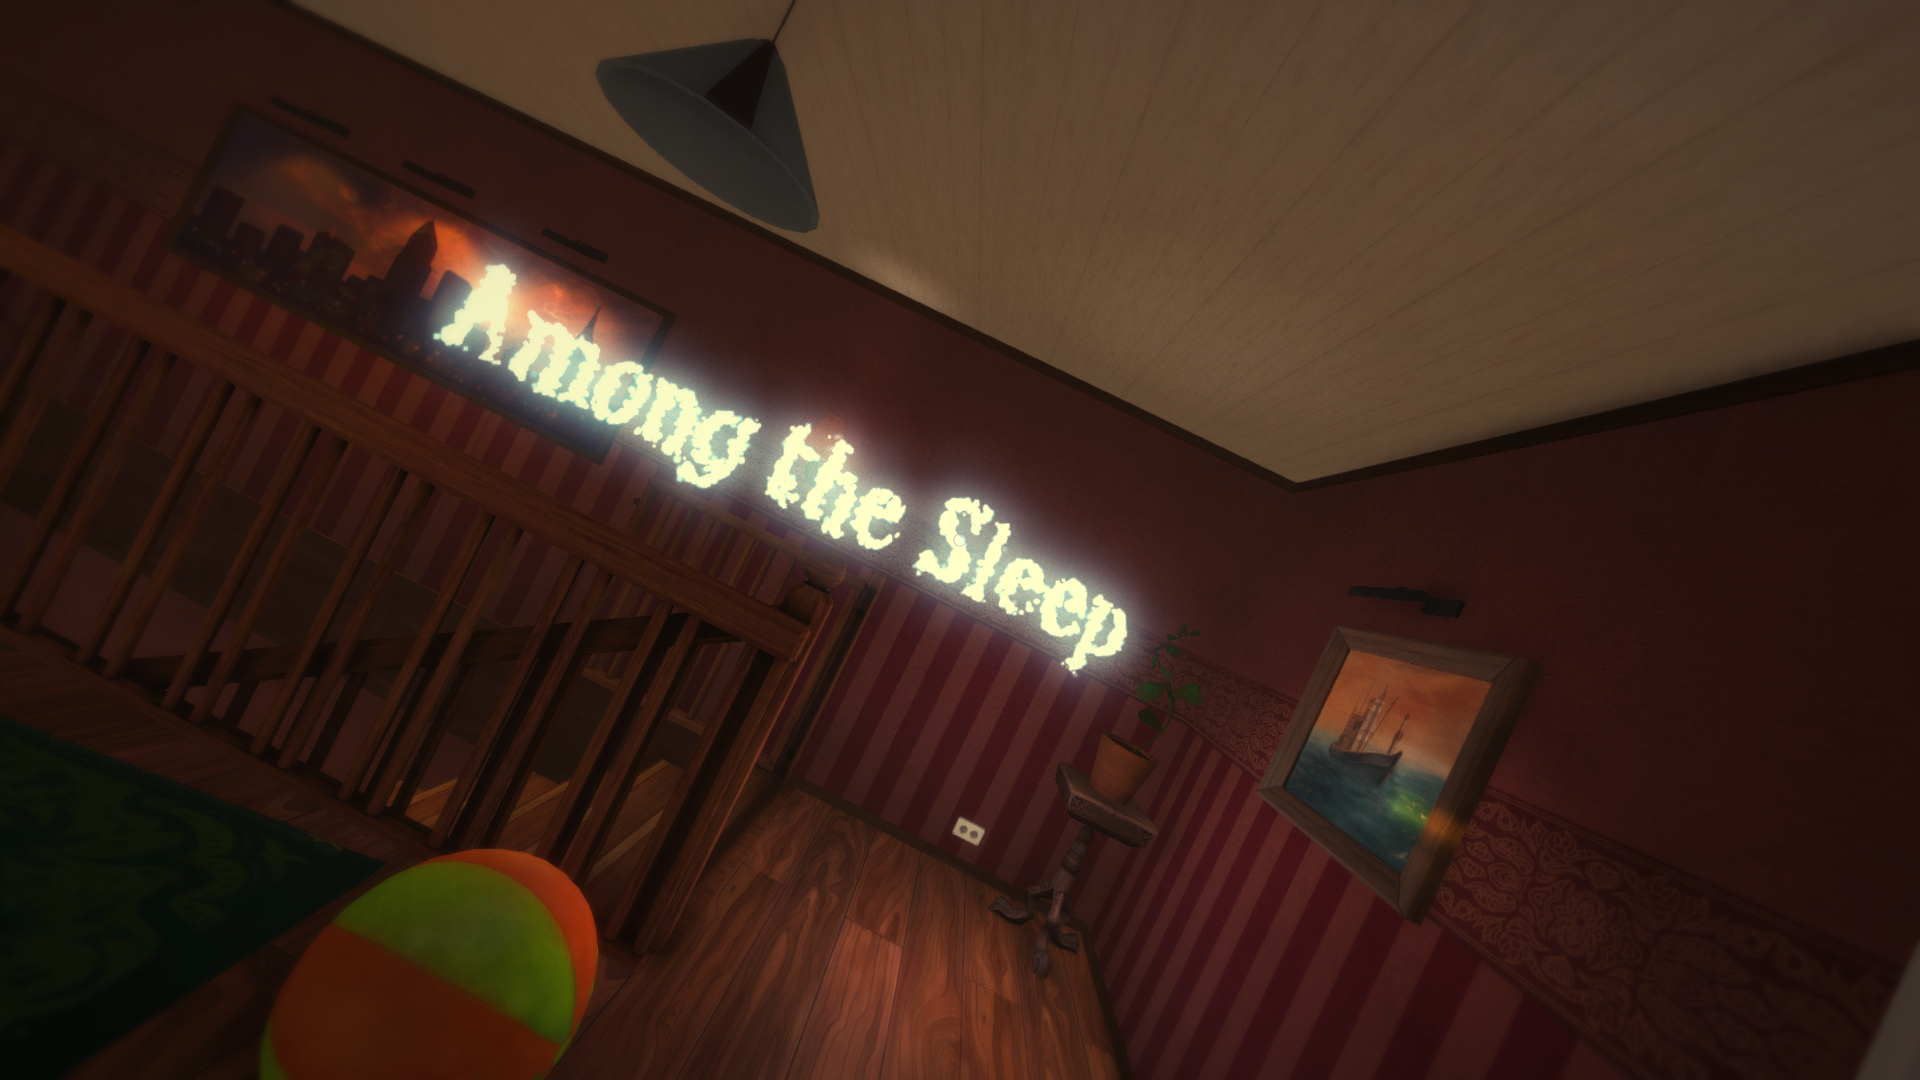 https://www.mobygames.com/images/shots/l/726099-among-the-sleep-windows-screenshot-game-title-shown-in-the.png